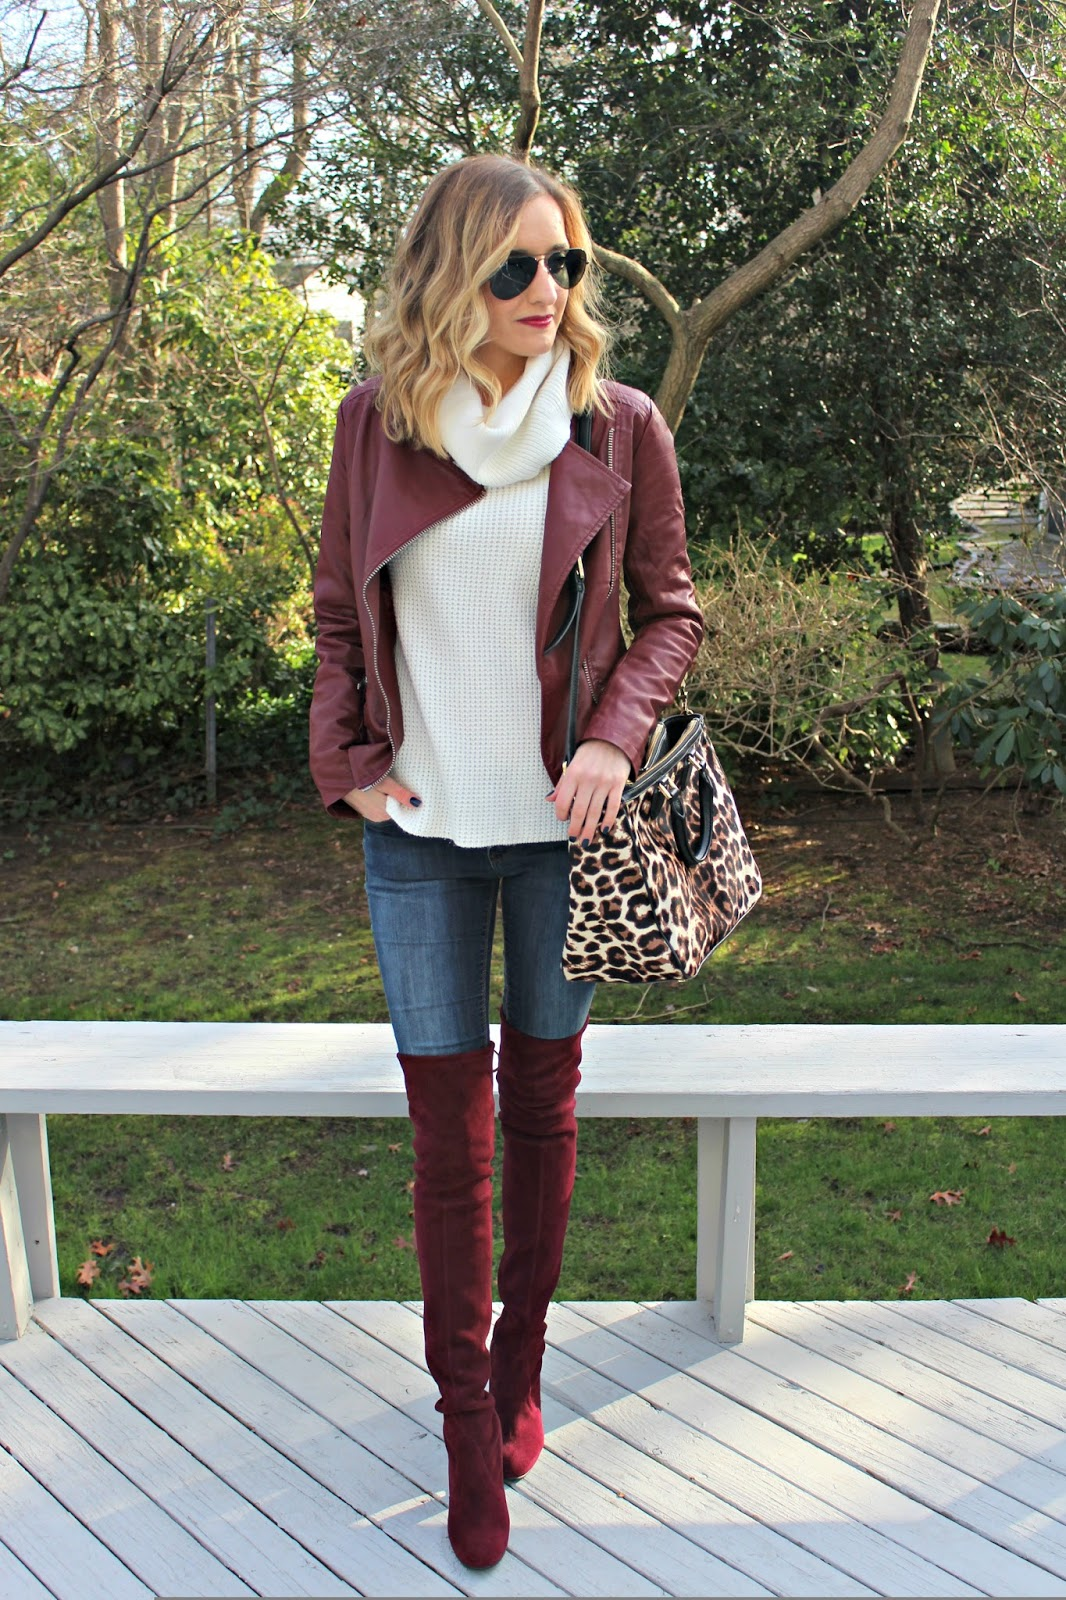 matching burgundy outfit